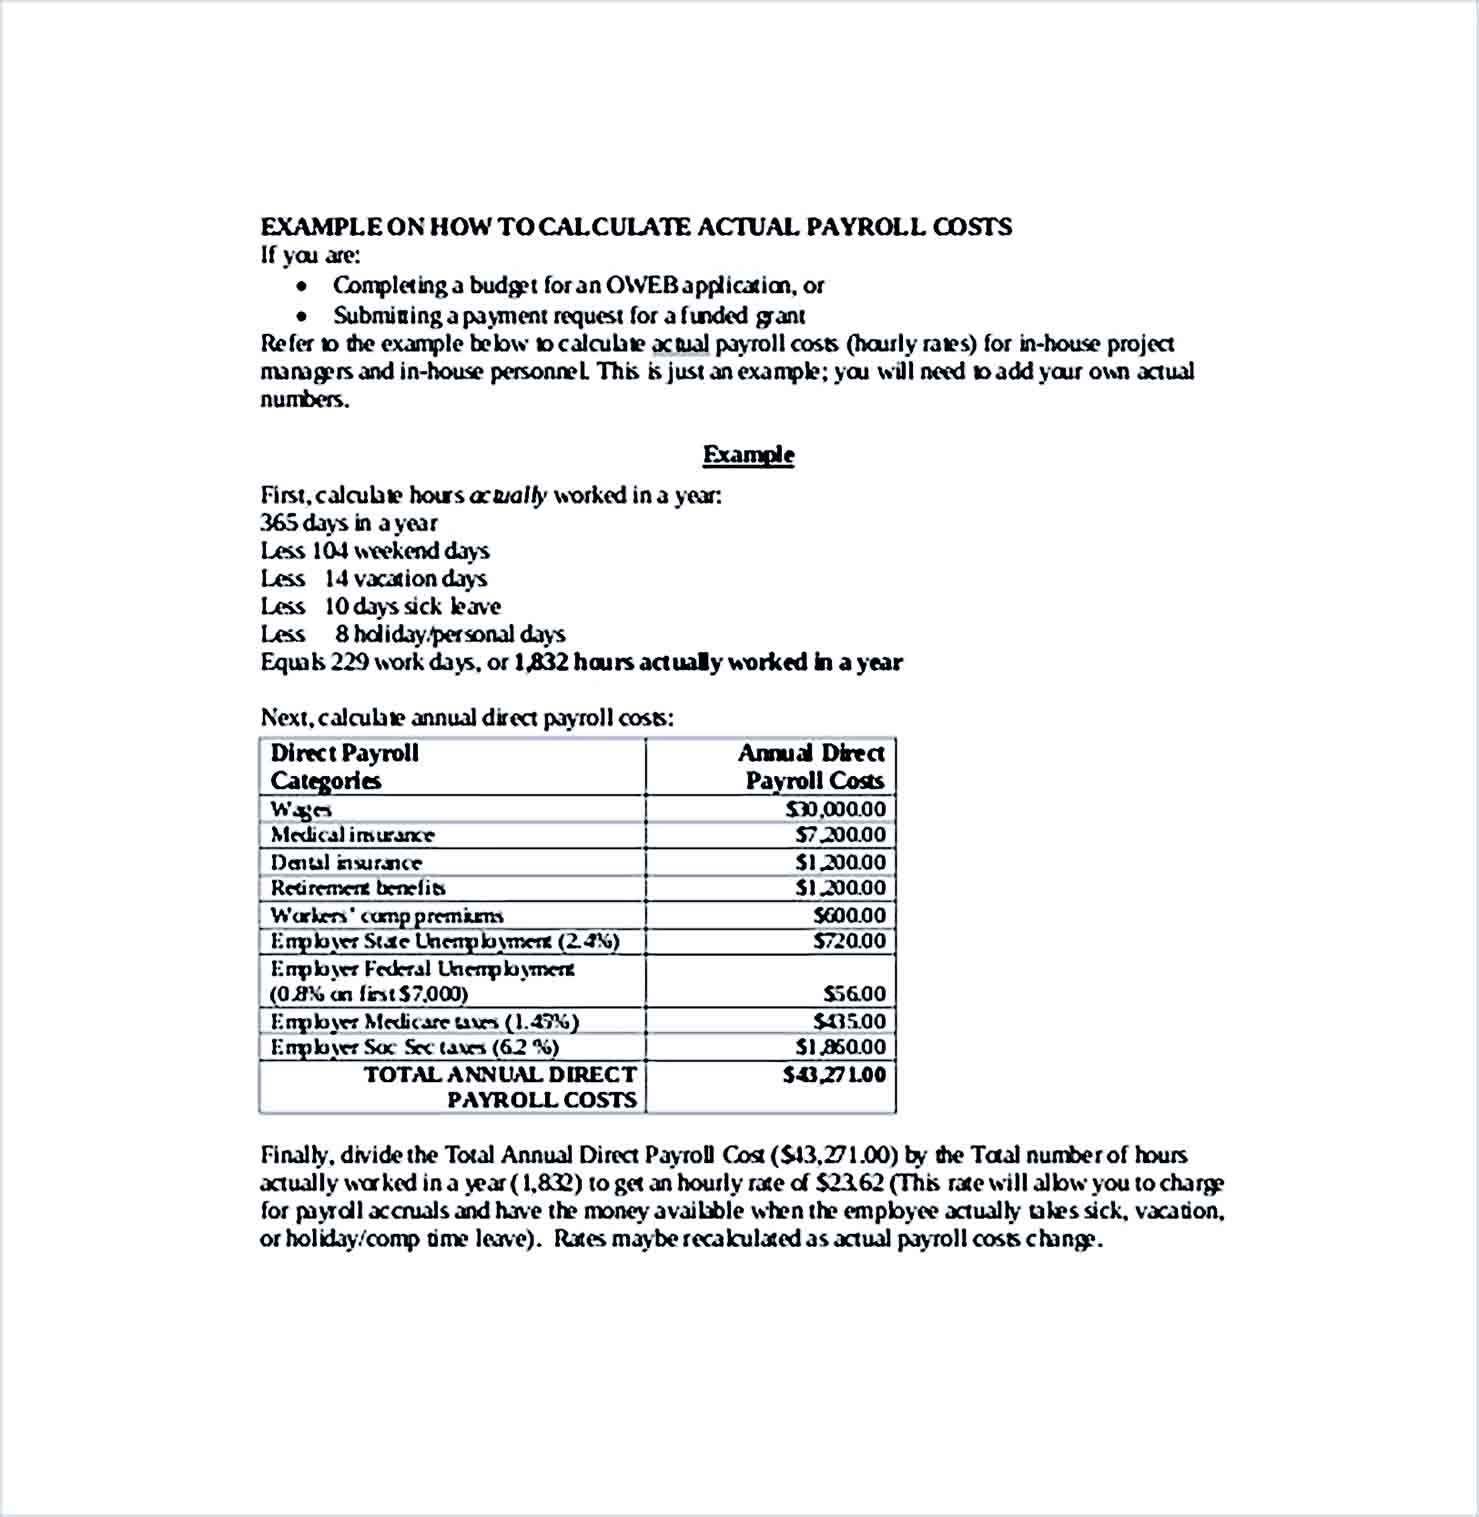 Sample Employee Payroll Budgeting and Billing Format